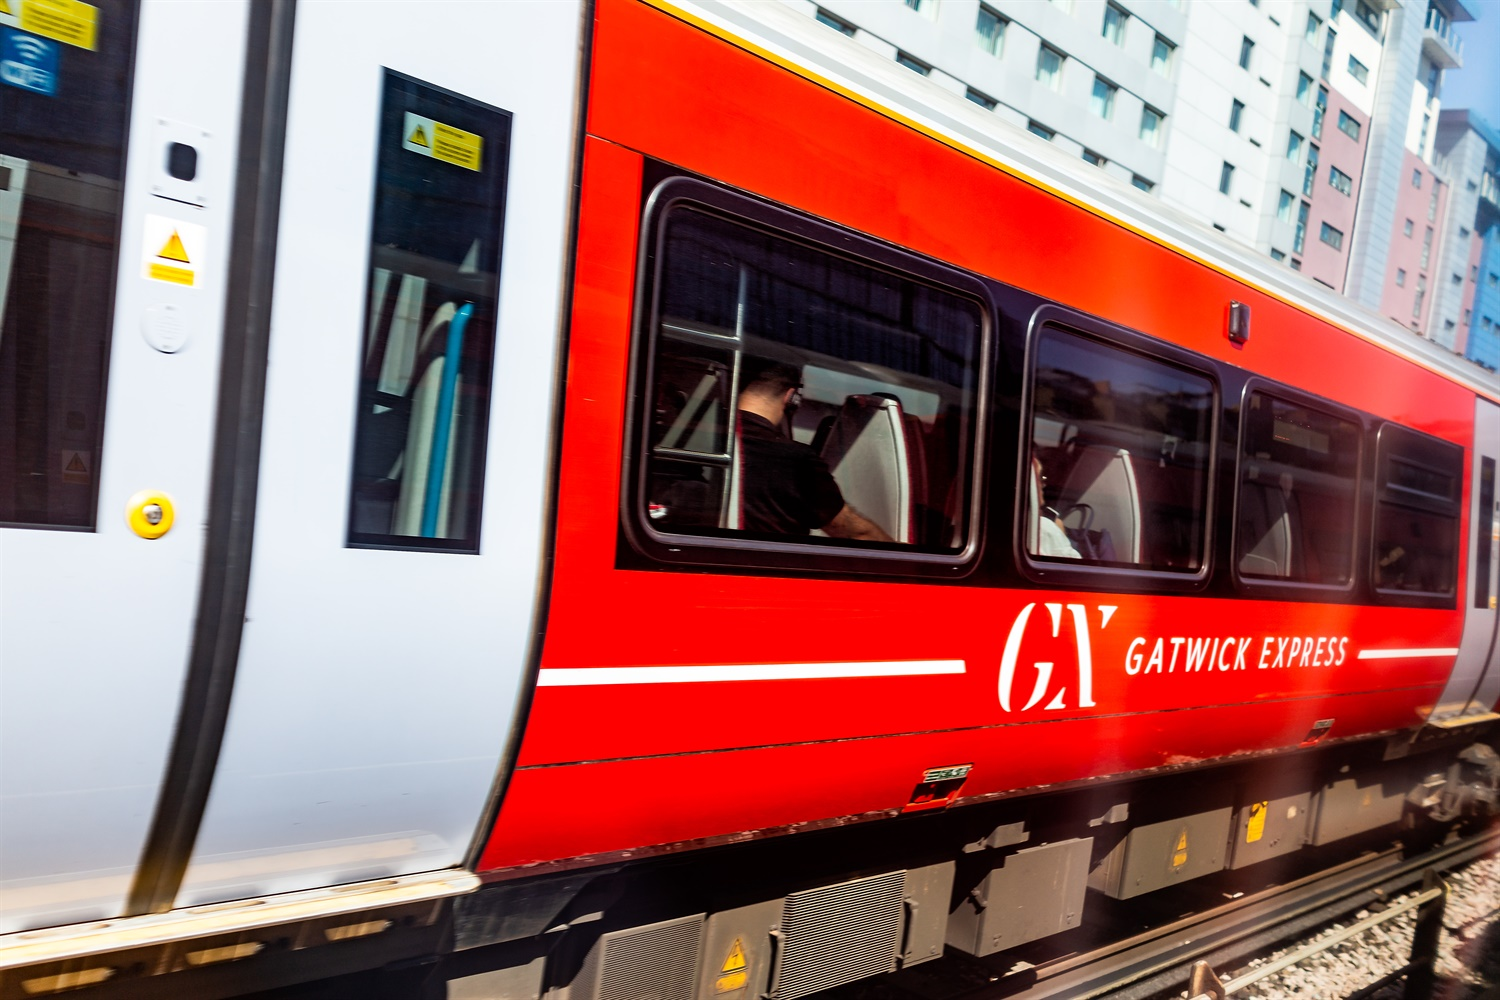 'Light at the end of the tunnel' as Gatwick Express trains trial due to start